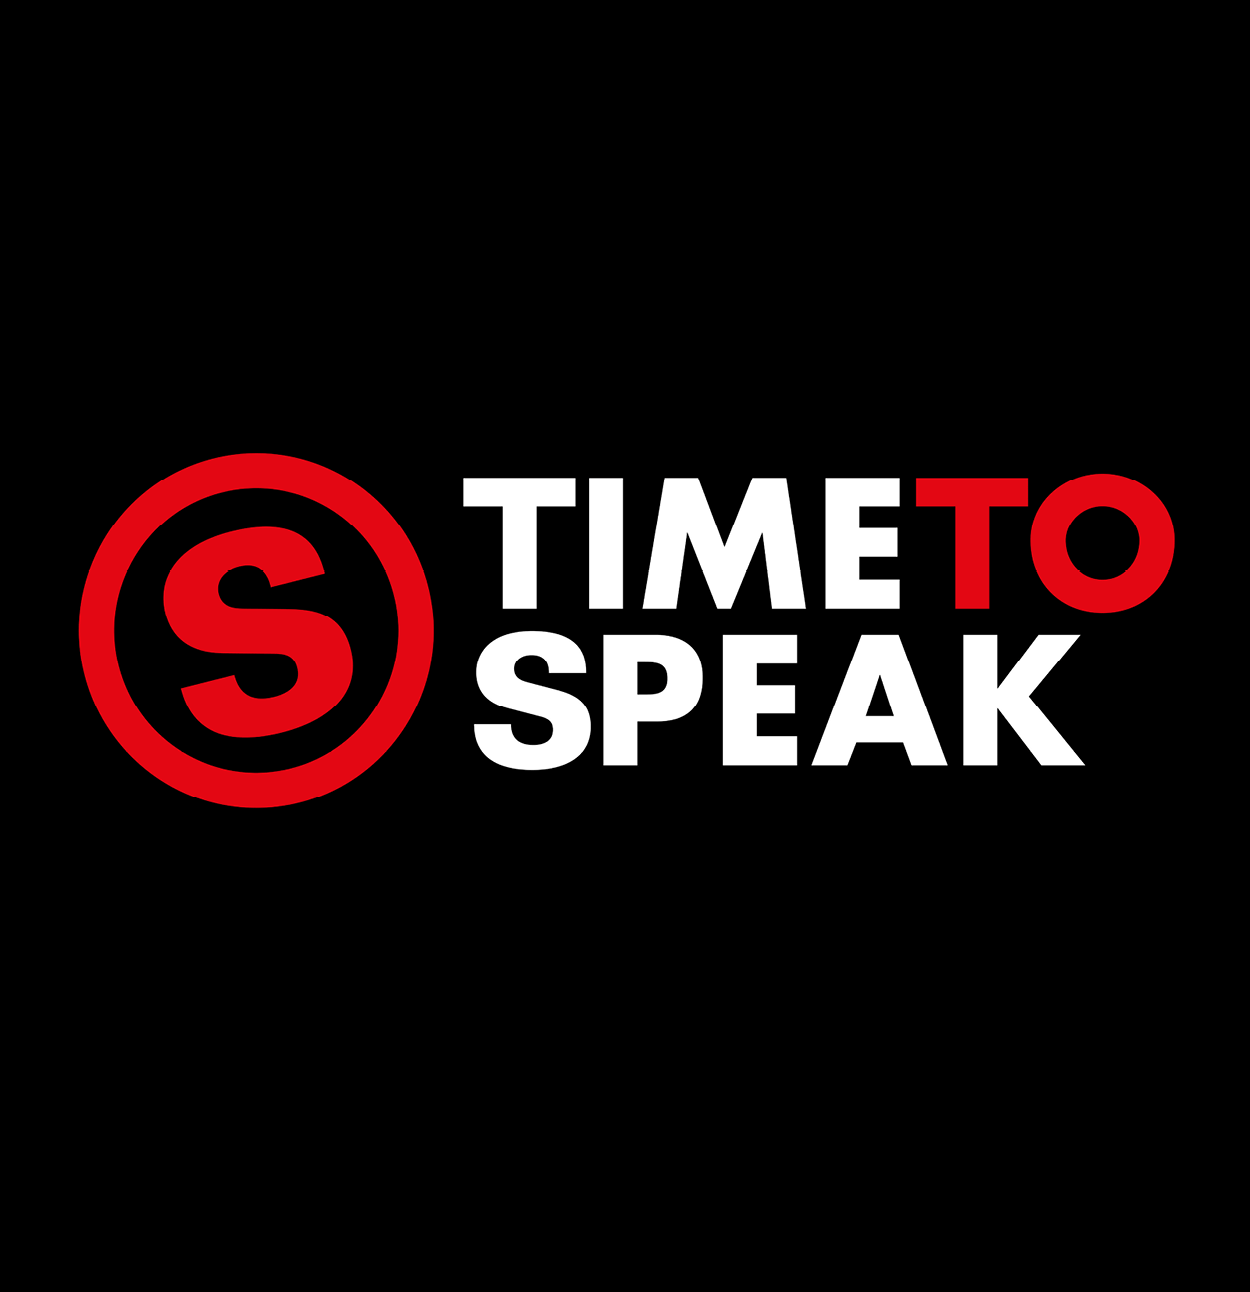 TIME TO SPEAK